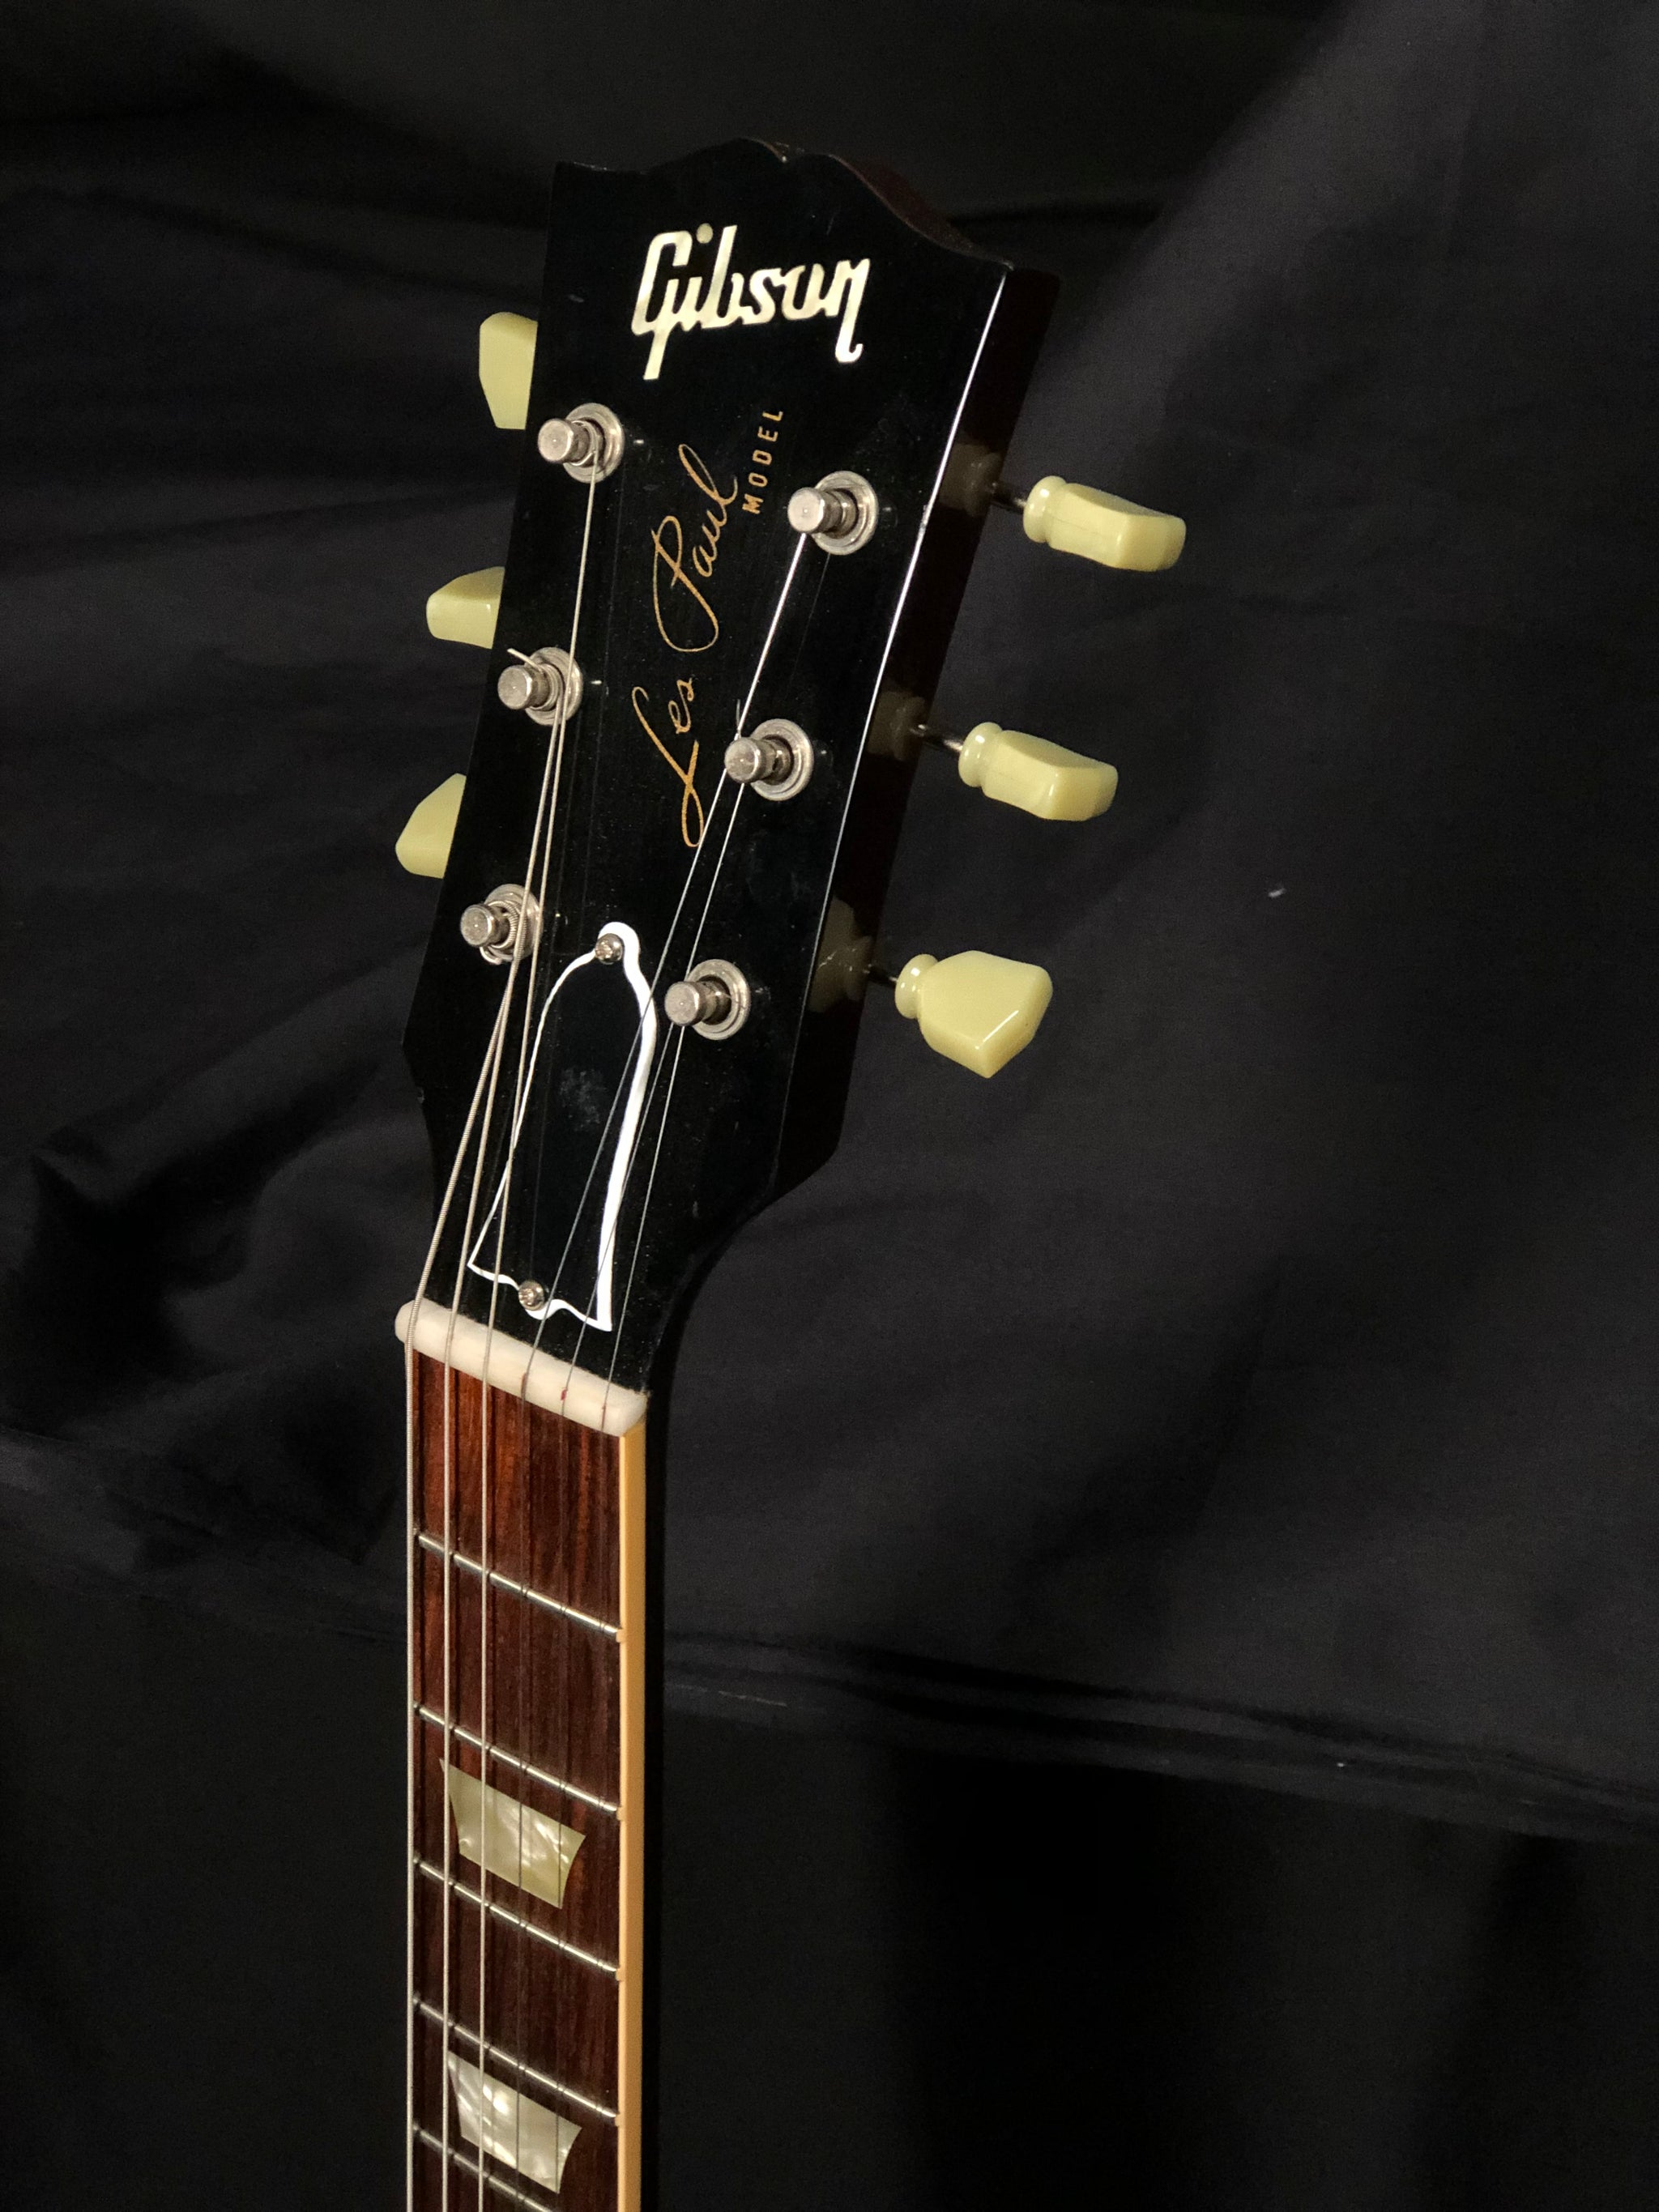 Gibson R4 Les Paul Gold Top